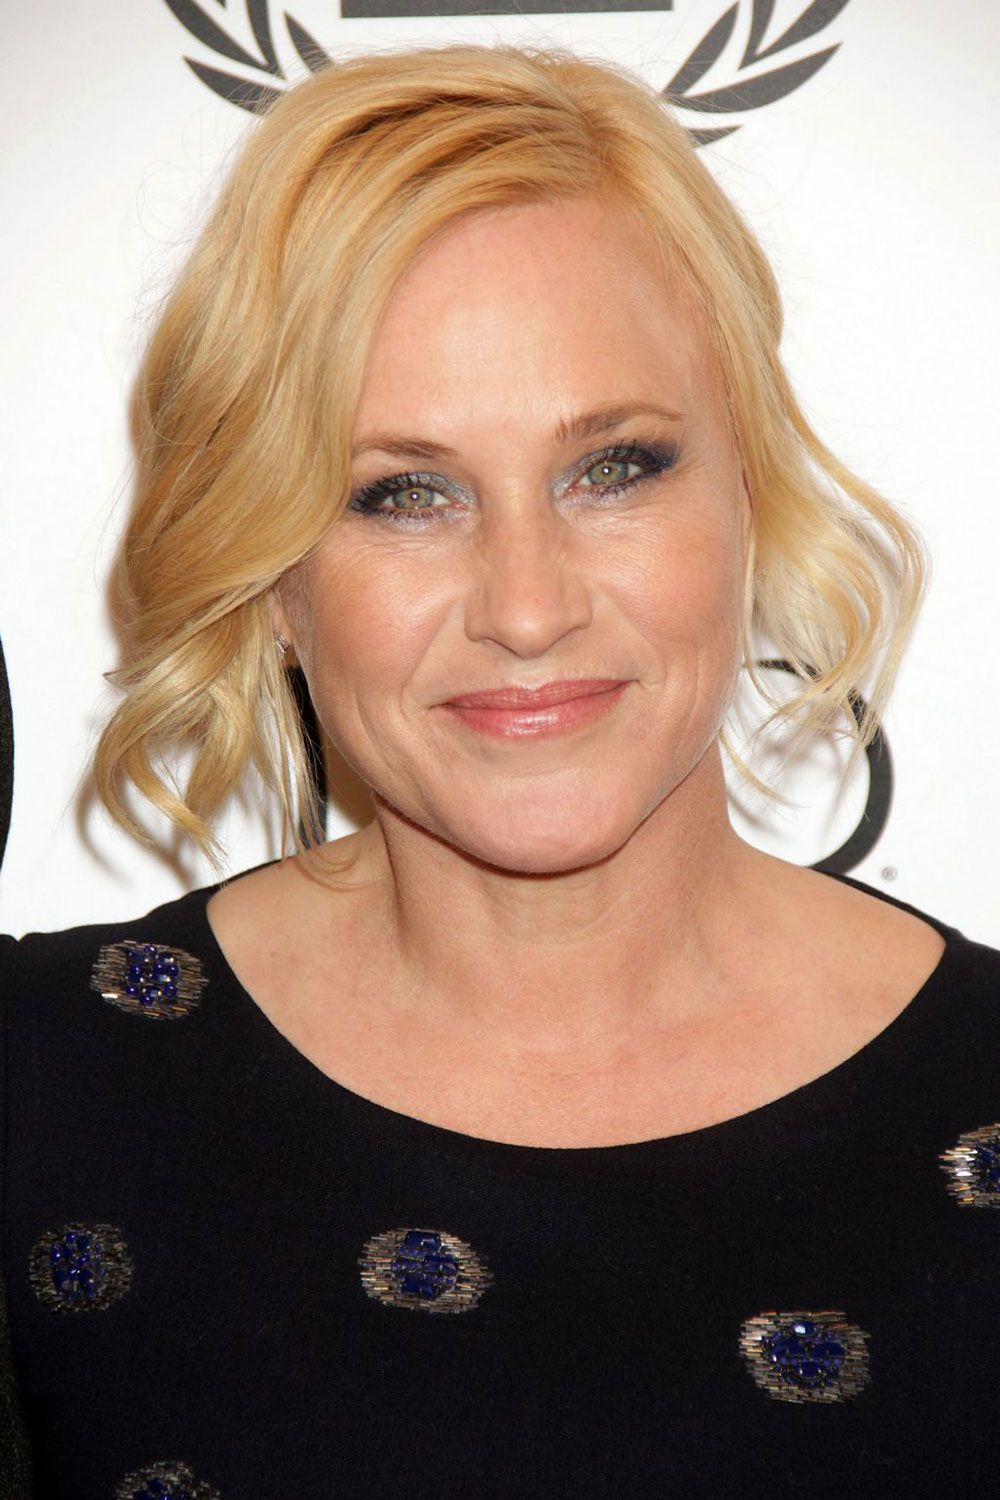 Patricia Arquette born April 8, 1968 (age 50)